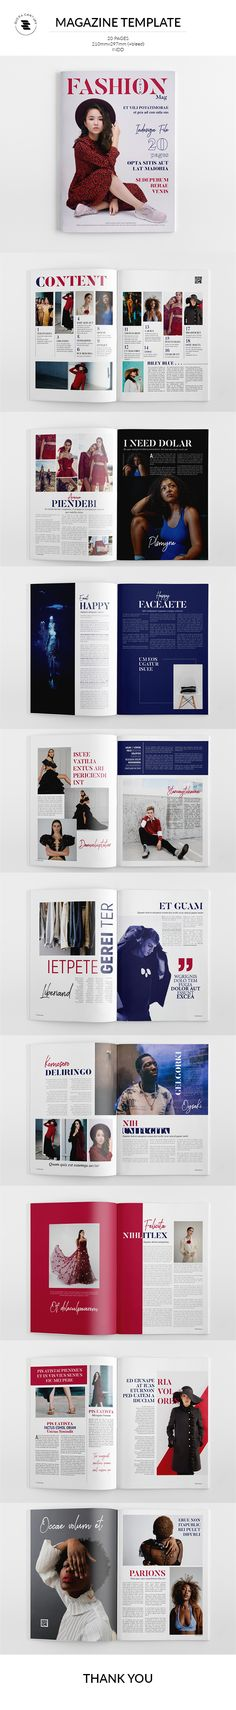 Buy Fashion Magazine by on GraphicRiver. The Magazine The Magazine. This layout is suitable for any project purpose. Magazine Template, Photo Displays, Brochure Design, Branding, Lettering, Templates, Ad Fashion, Portfolio Layout, Magazine Editorial